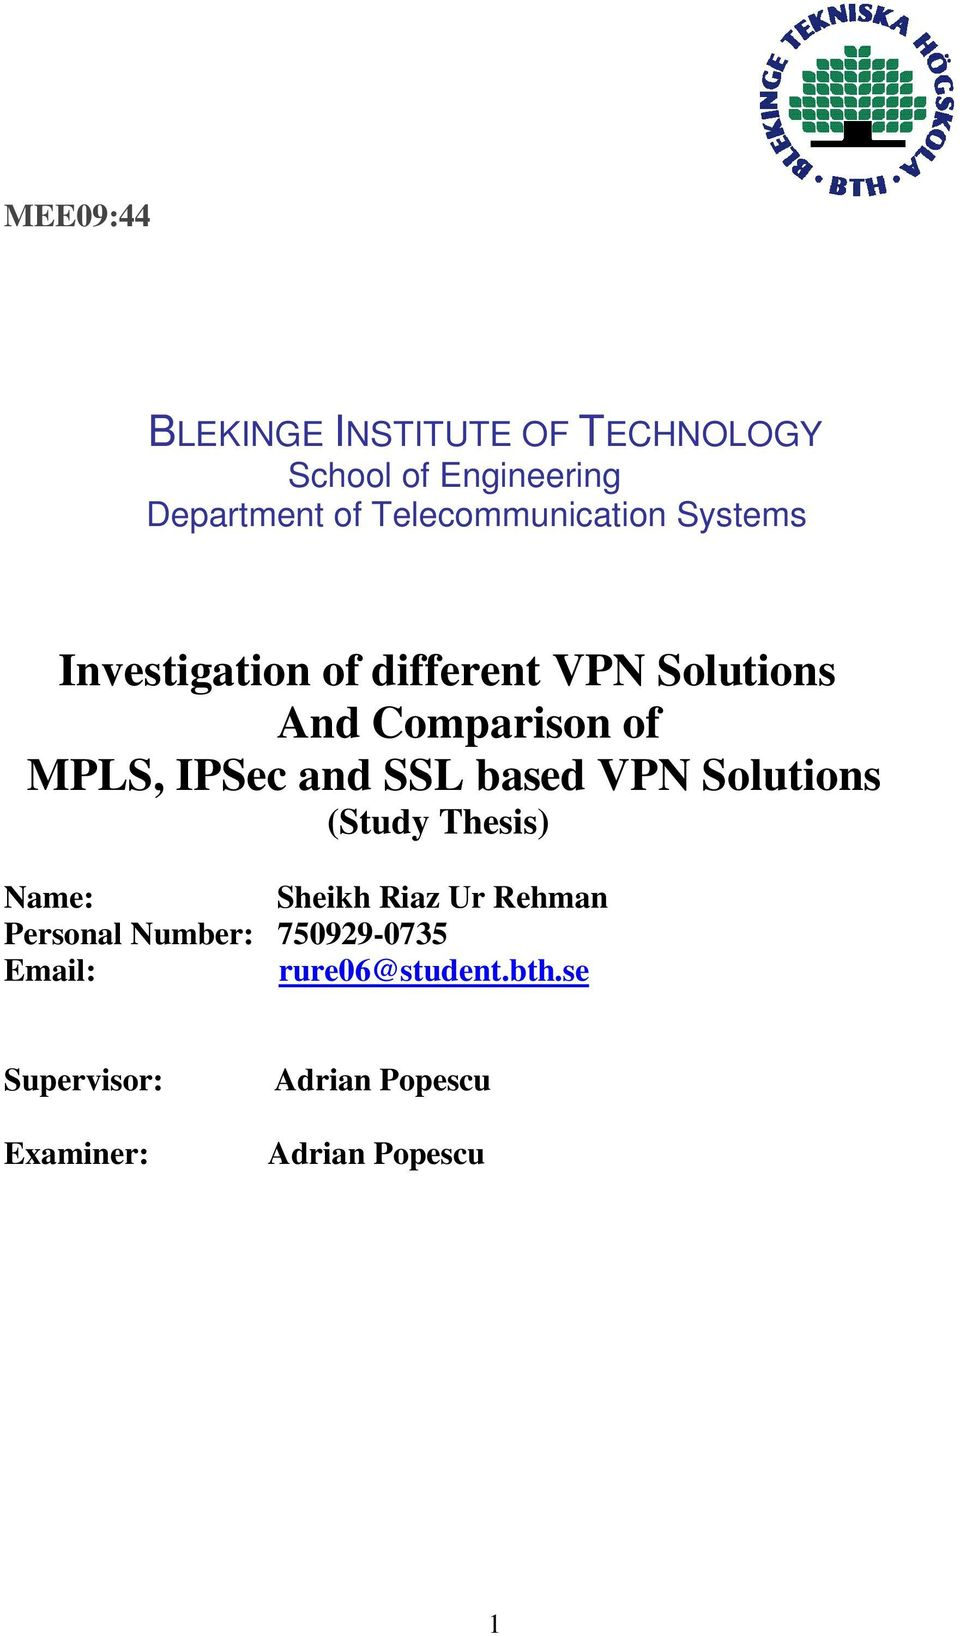 MPLS, IPSec and SSL based VPN Solutions (Study Thesis) Name: Sheikh Riaz Ur Rehman